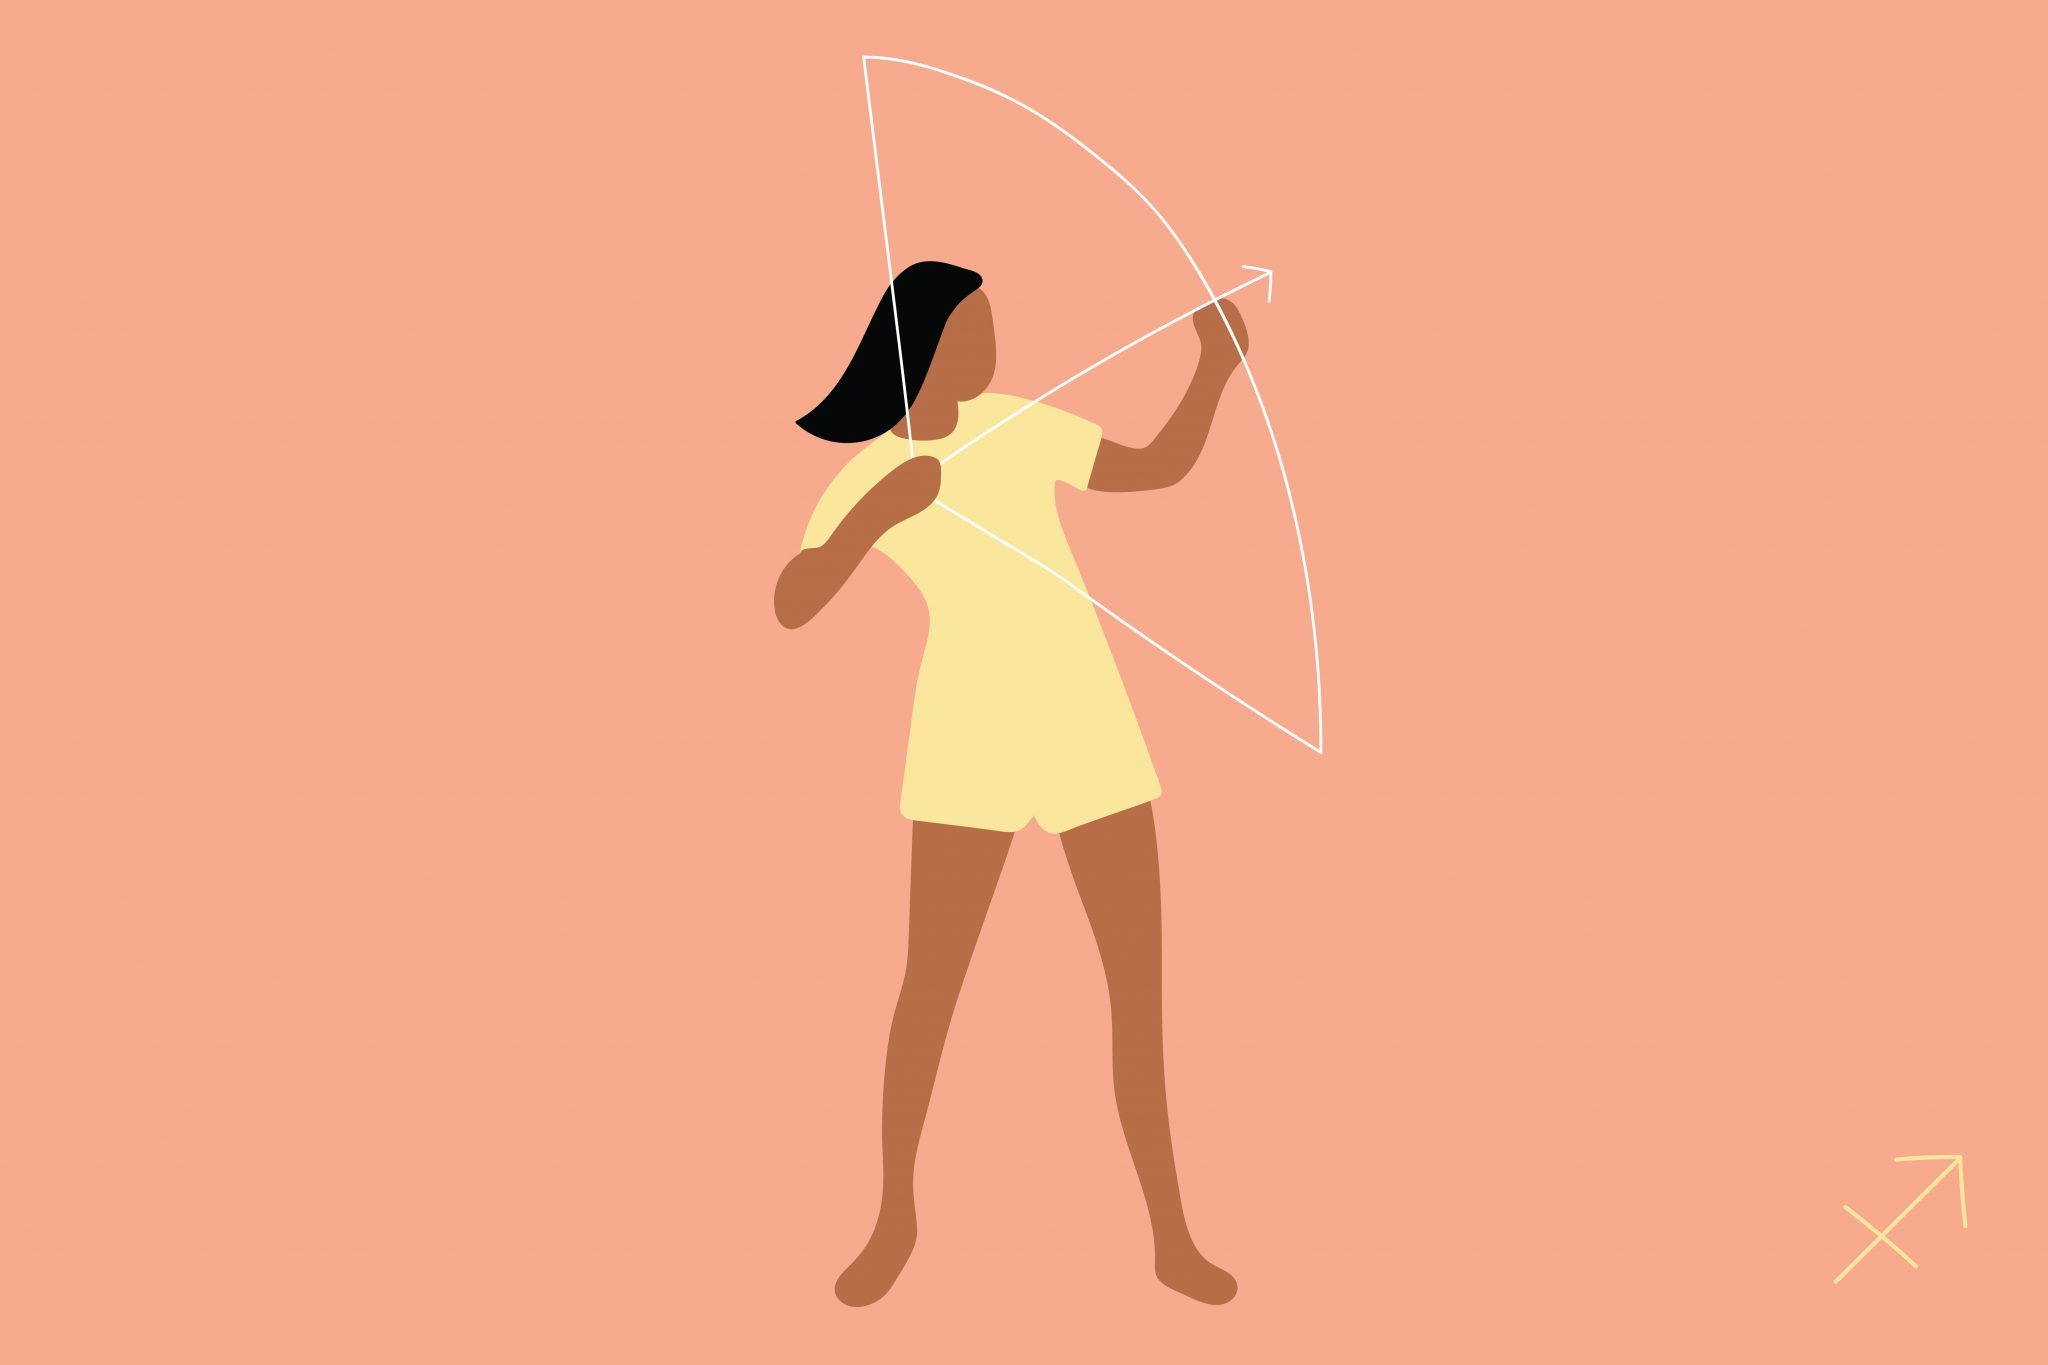 Sagittarius woman illustration